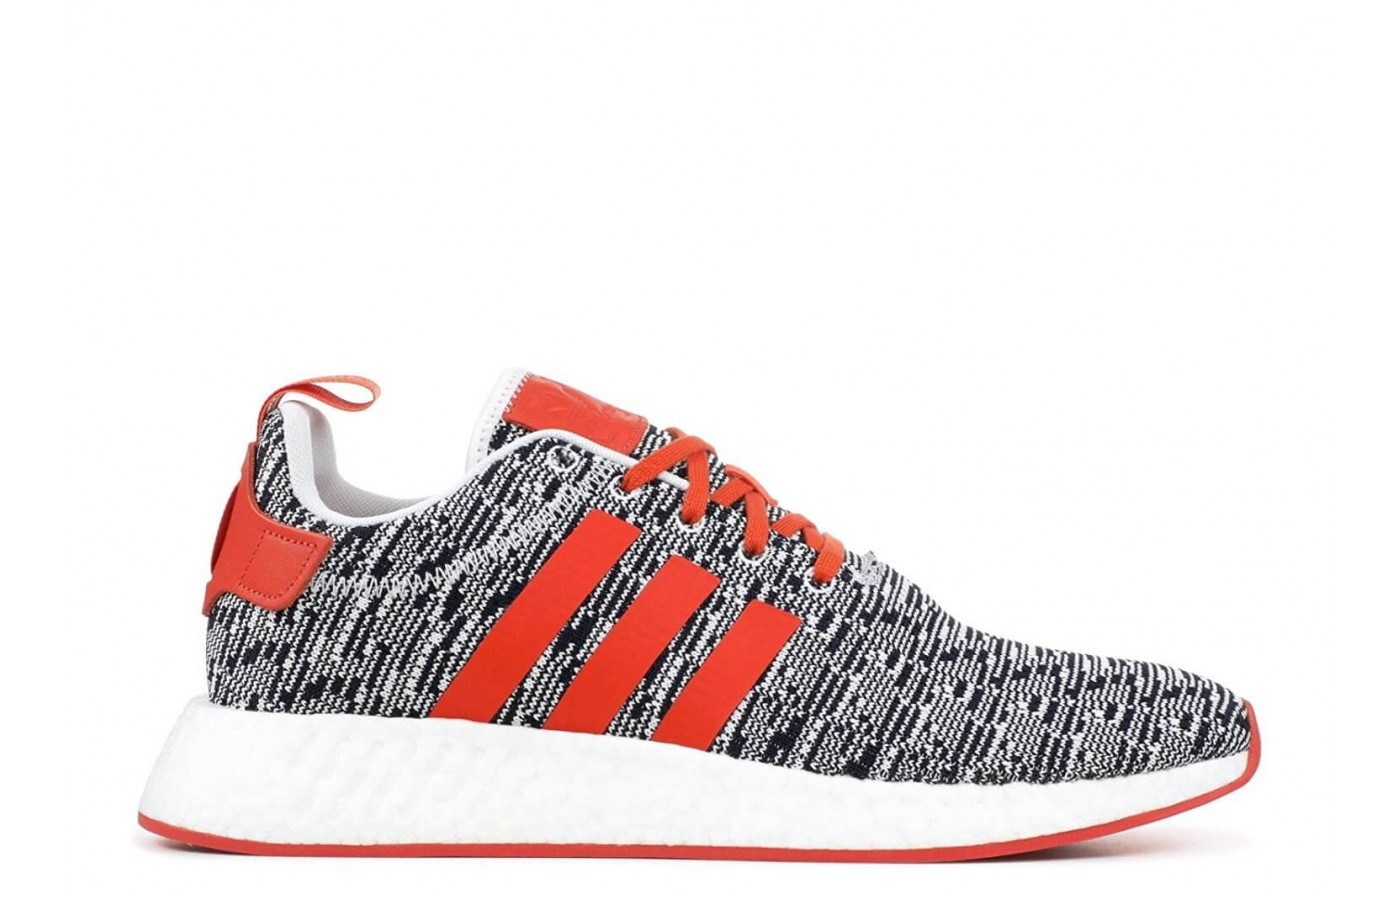 6ba479905 Adidas NMD R2ed for Performance and Quality - May 2019